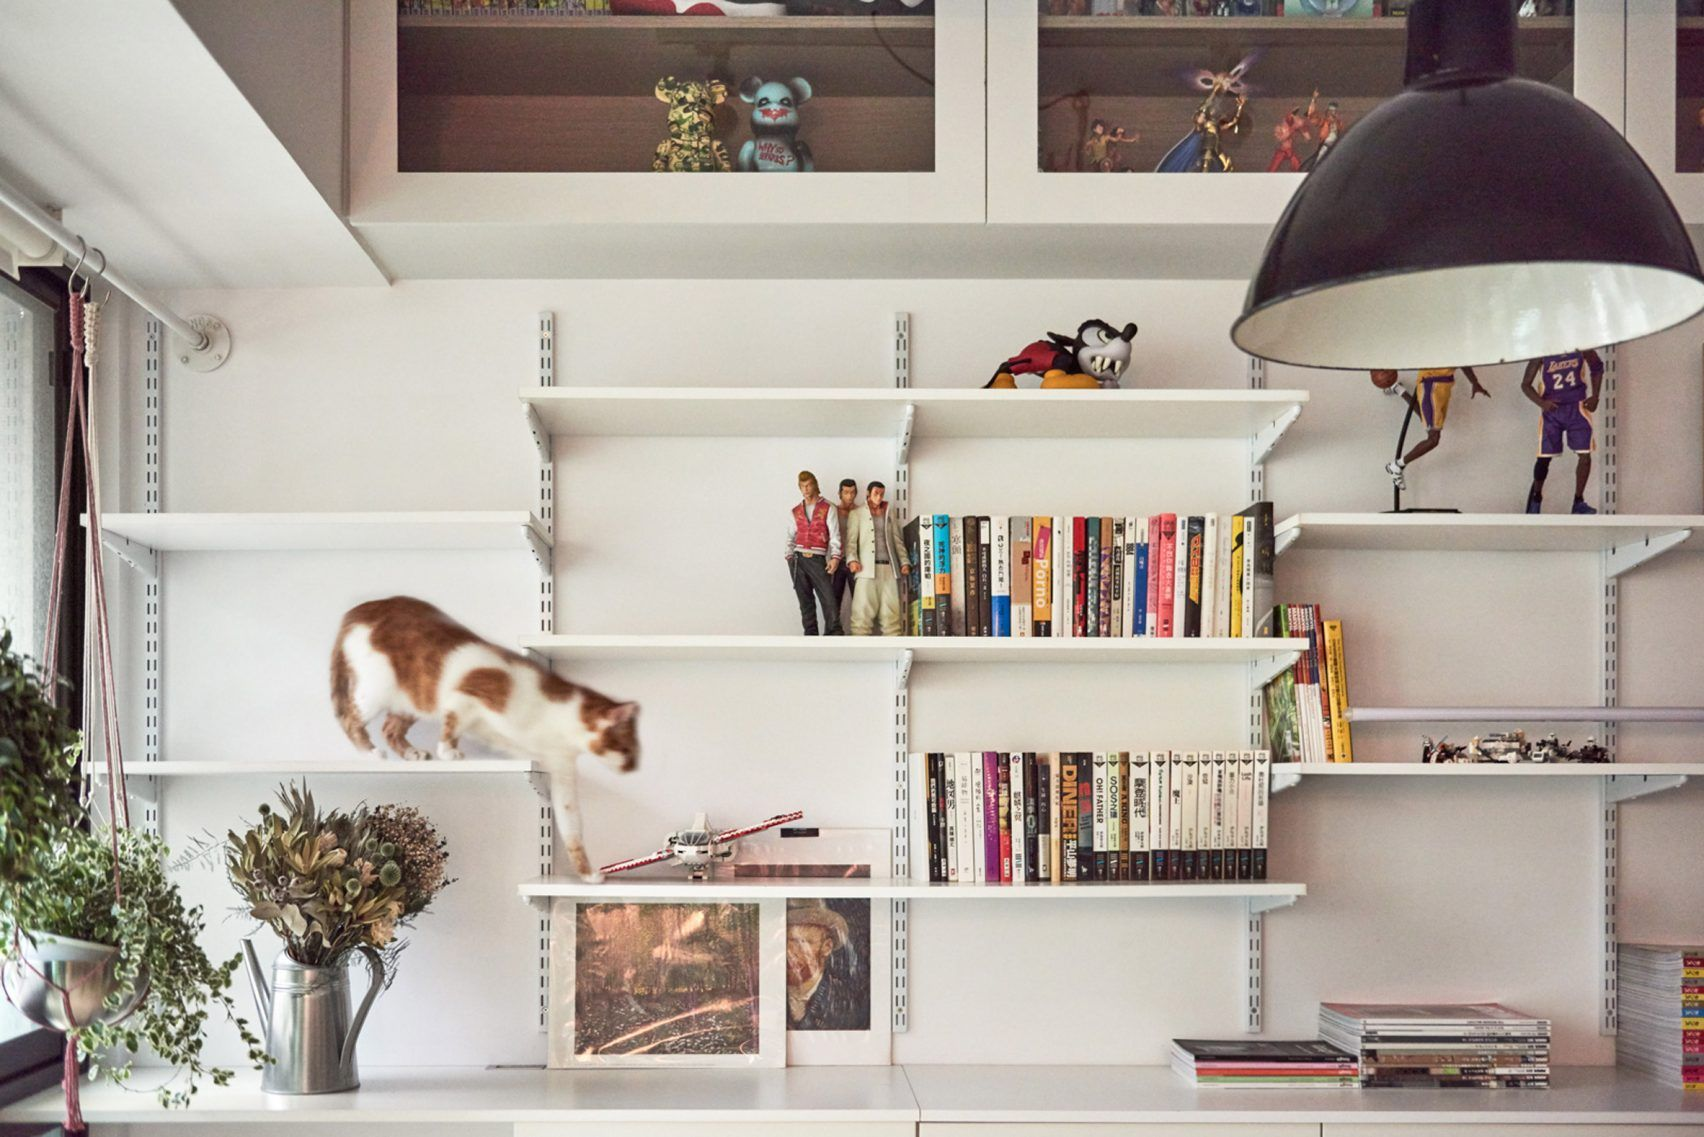 Taiwan apartt renovation gives owner and his cats room to play ...